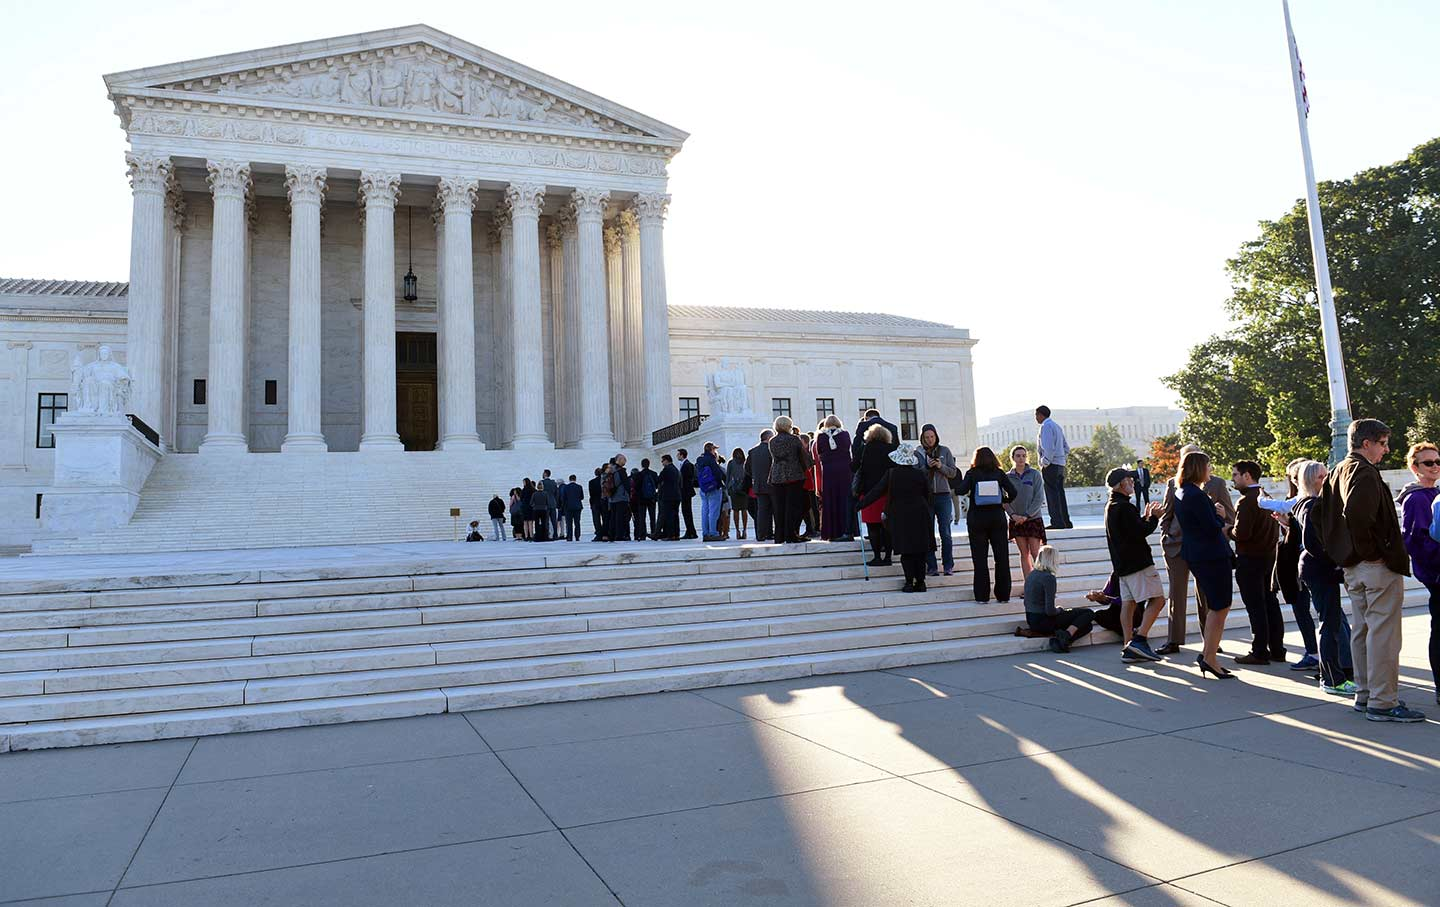 People wait outside the Supreme Court